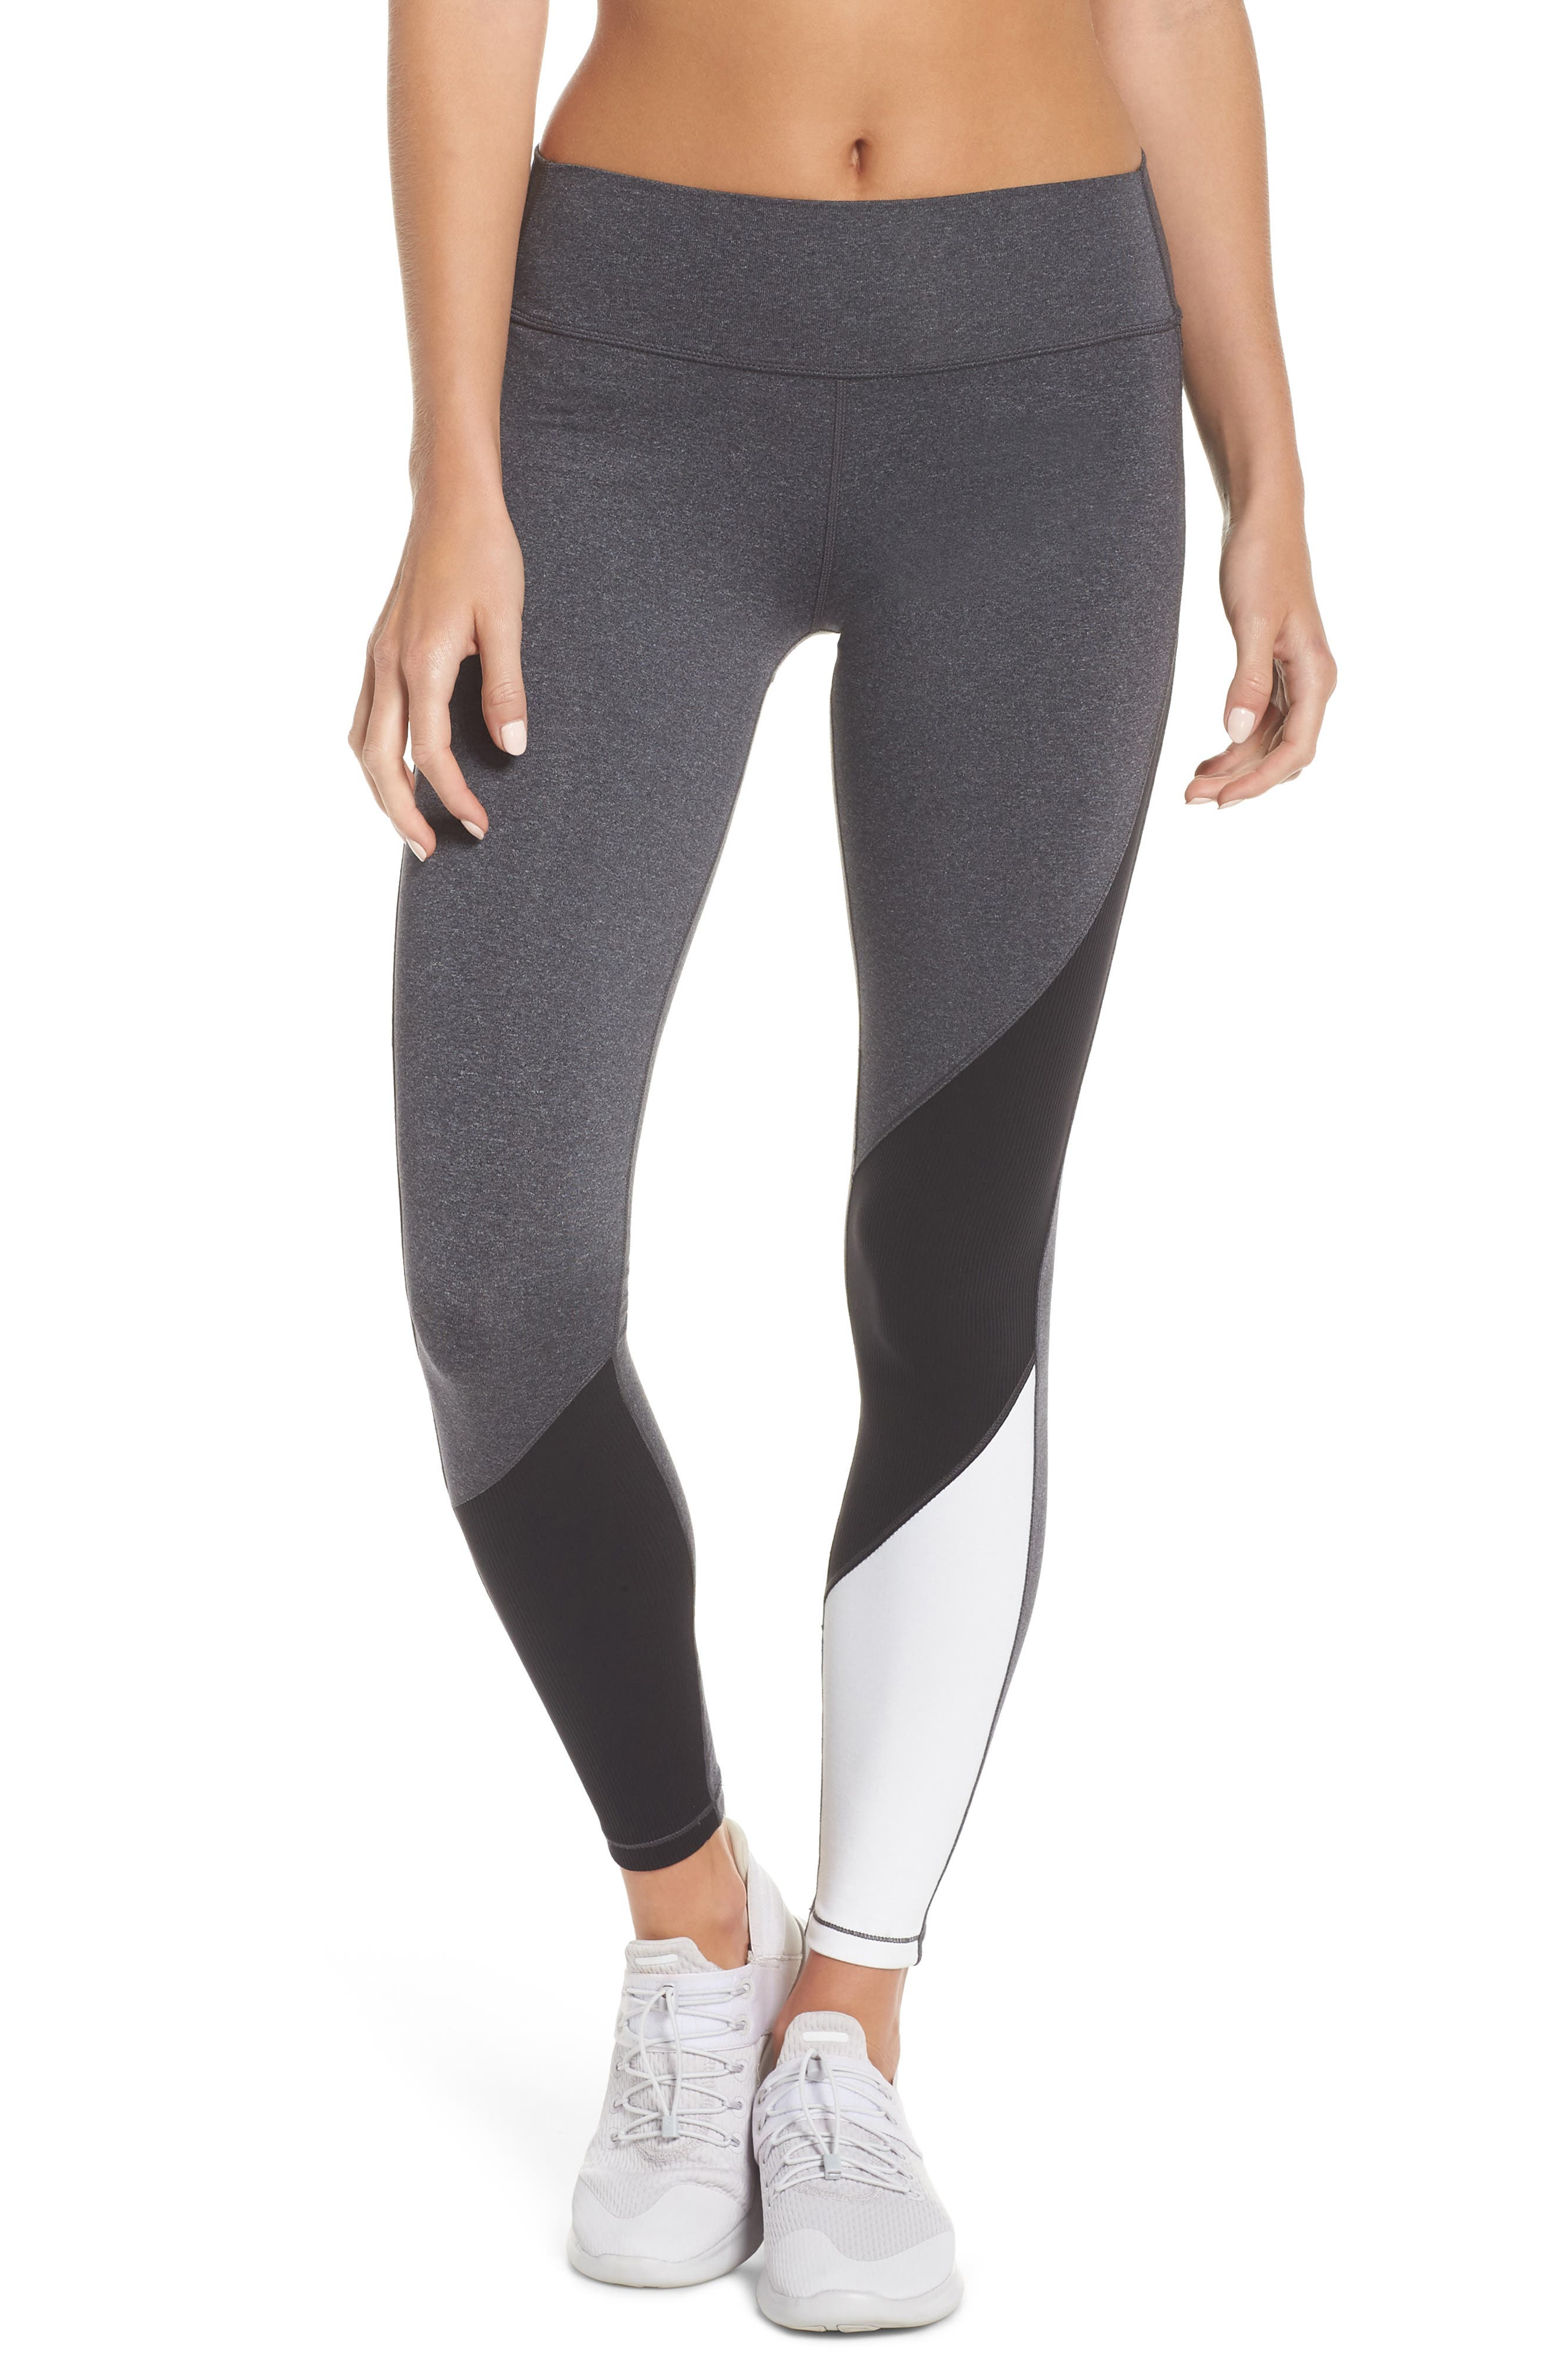 All Star Leggings,                         Main,                         color, HEATHER GREY/ BLACK/ OFF WHITE